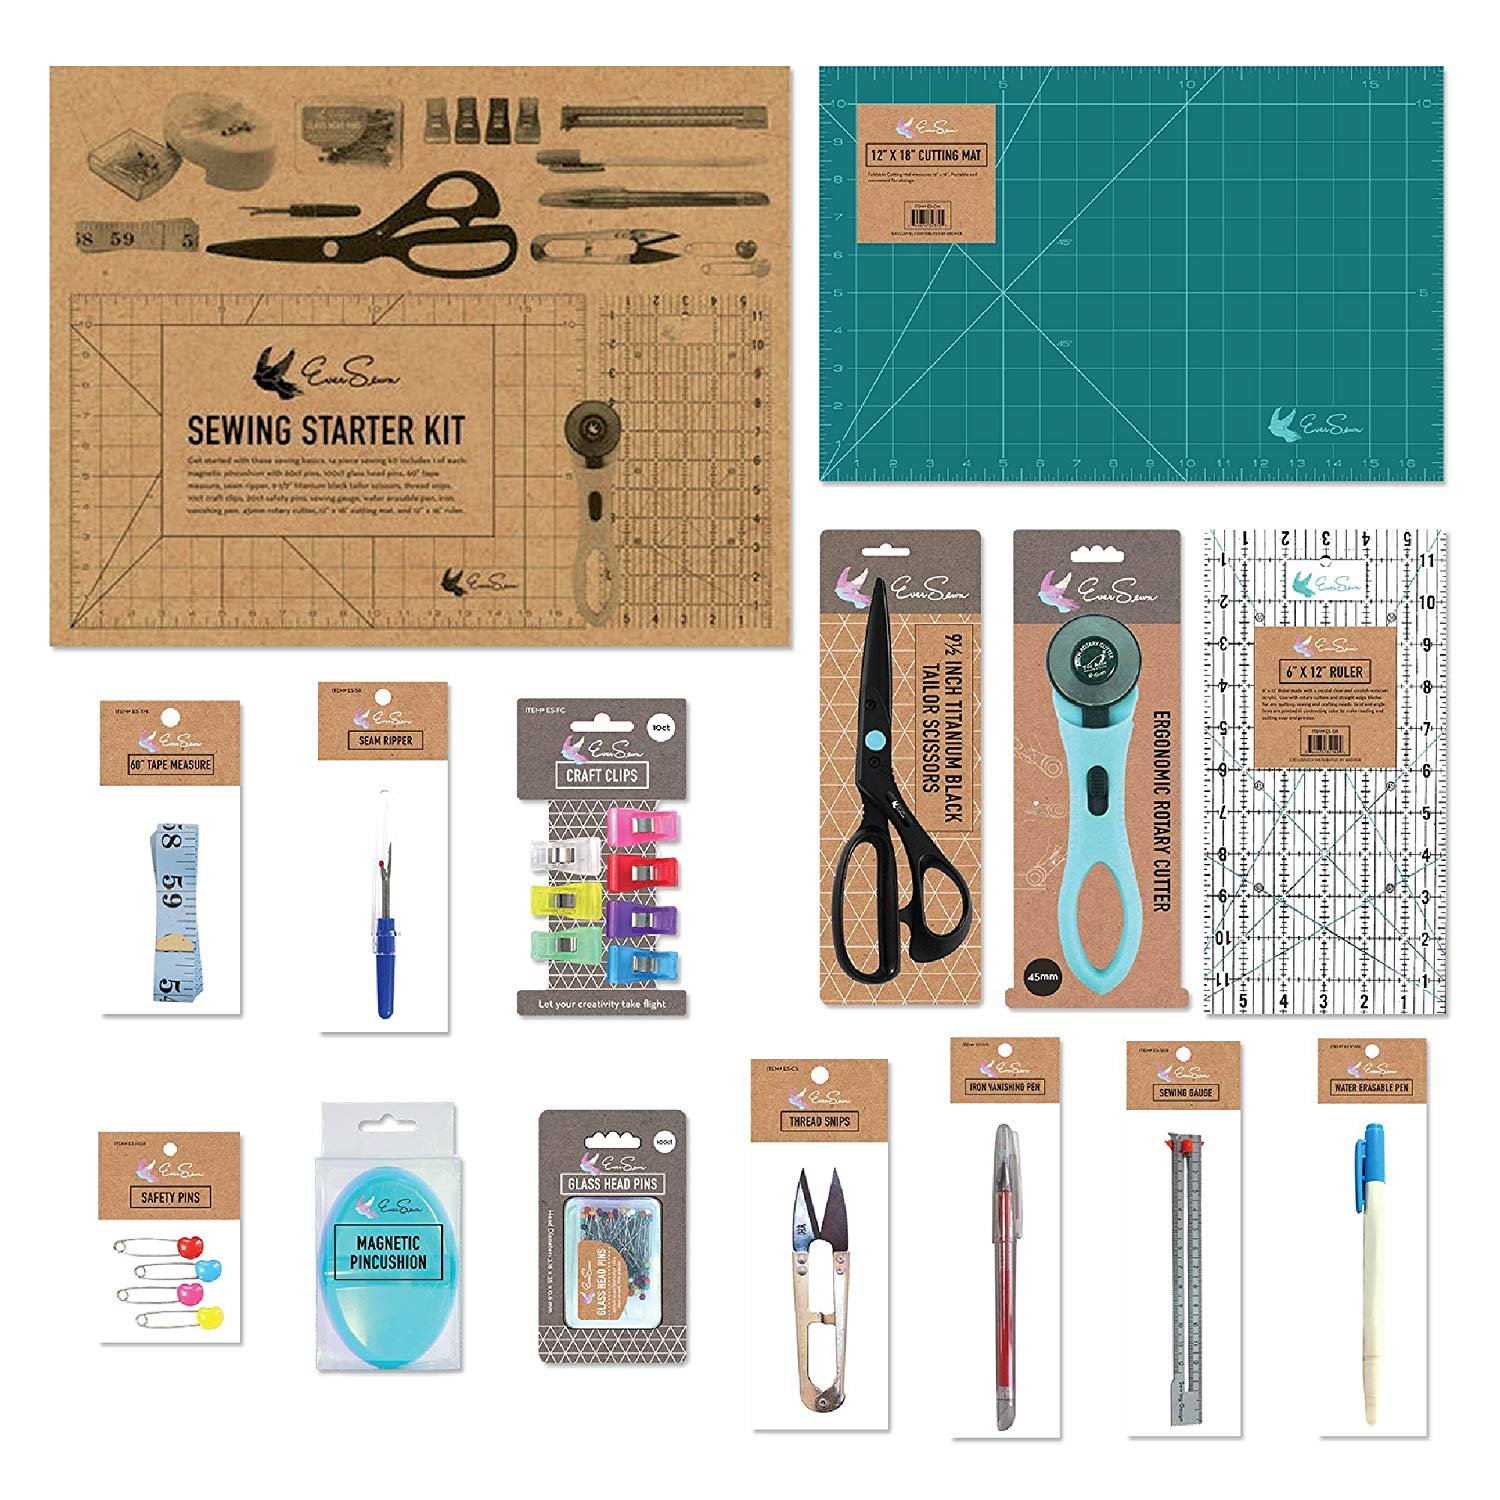 Sewing starter kit gifts for sewers